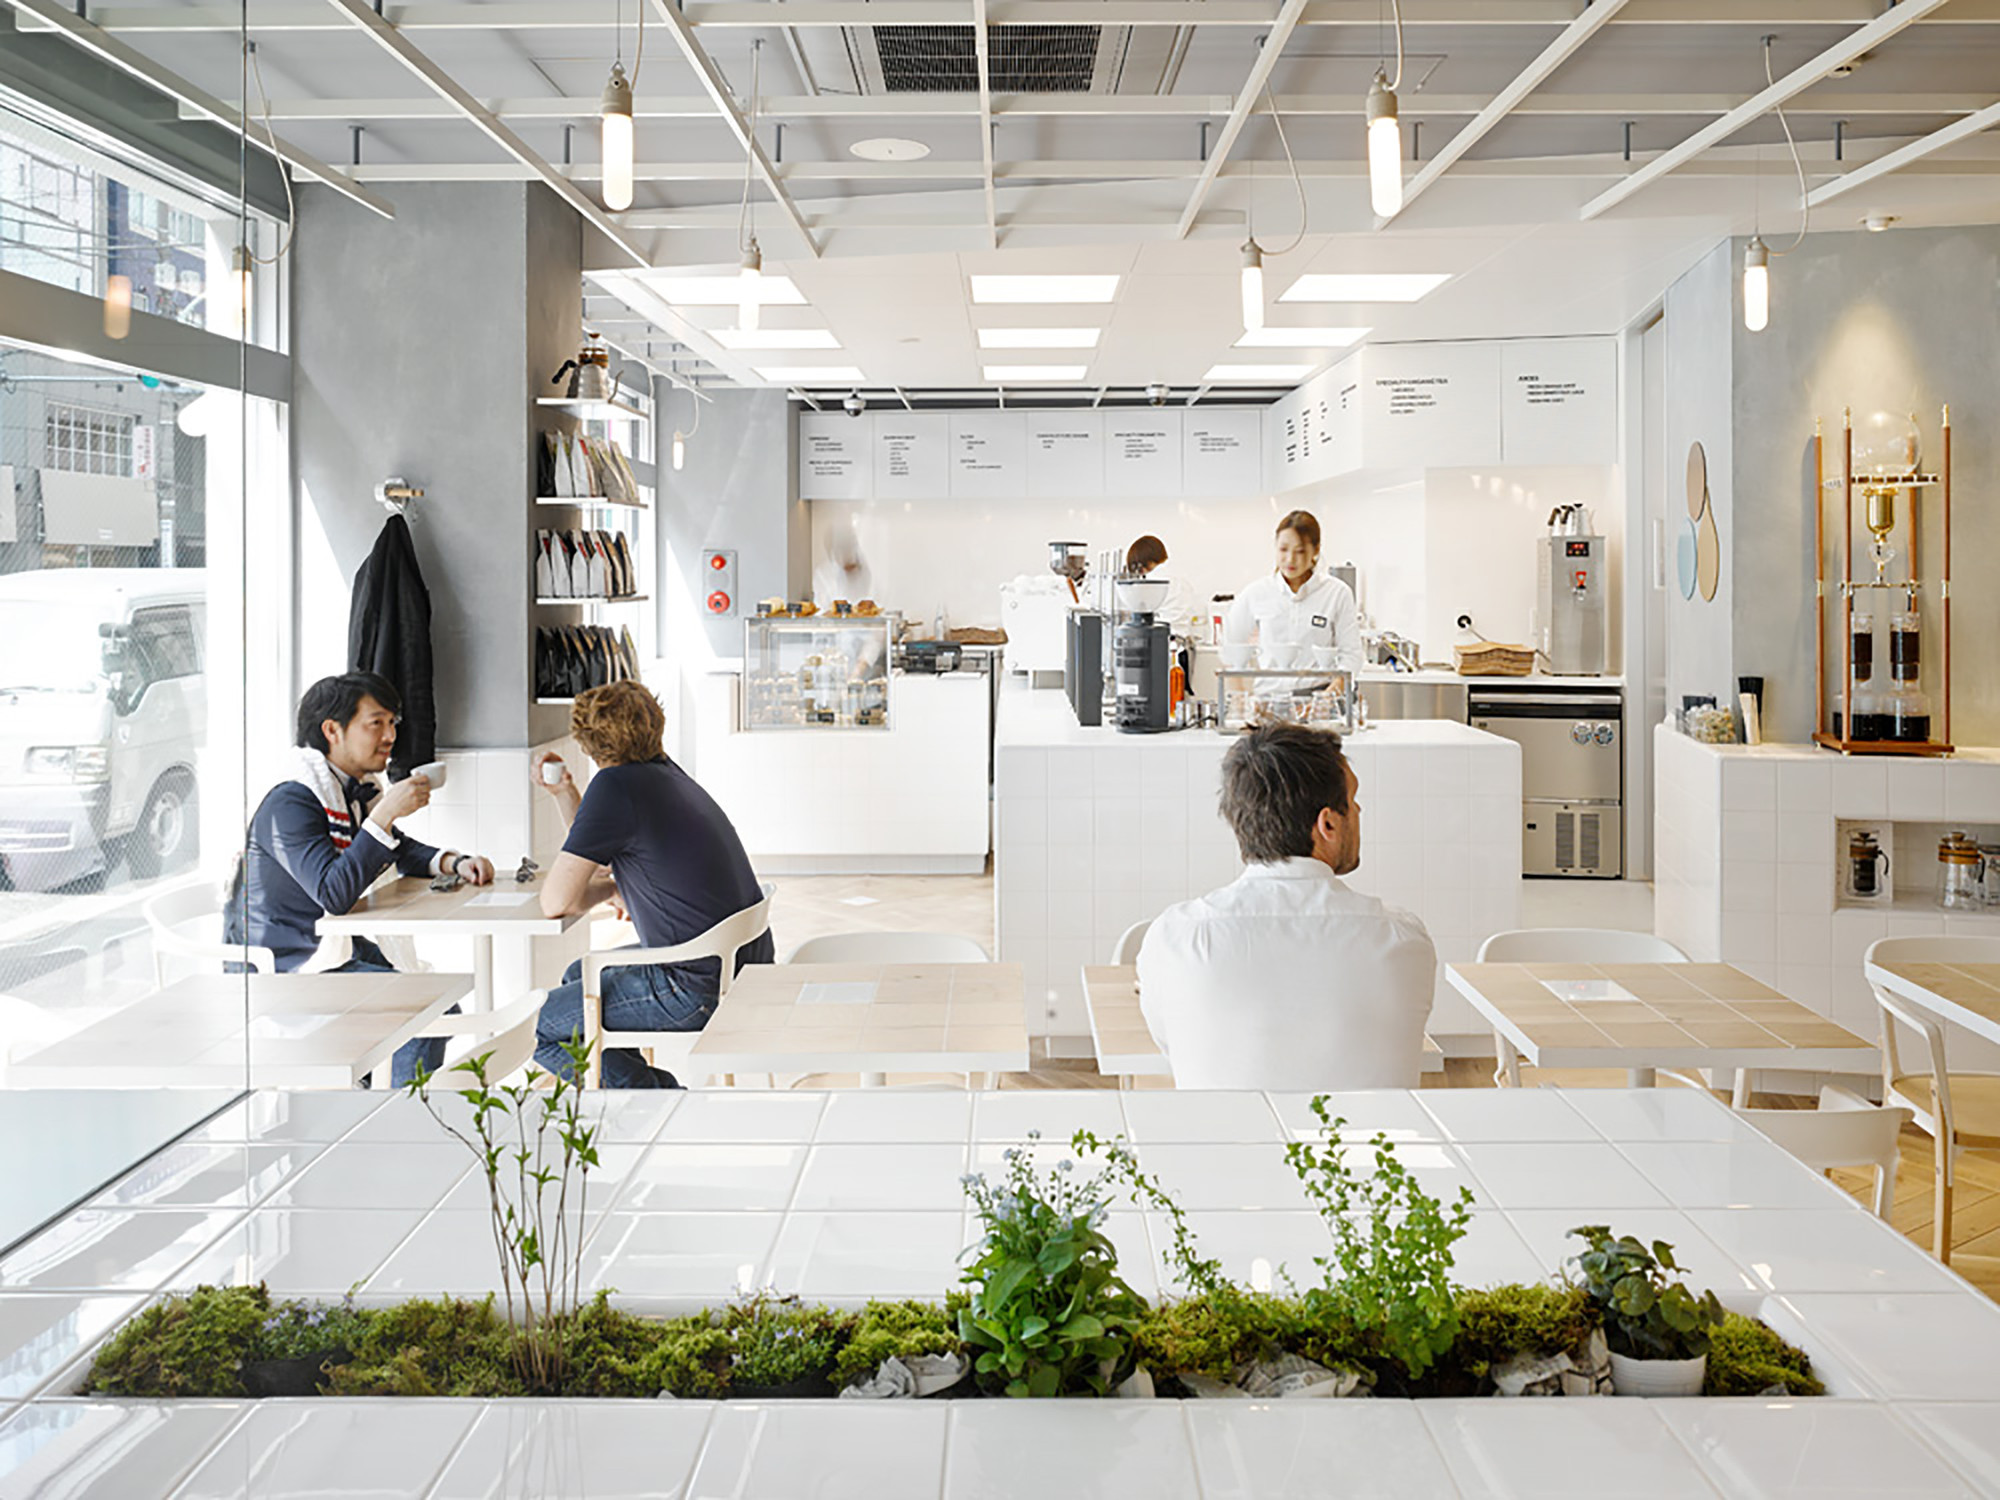 Cafe coutume aoyama cut architectures